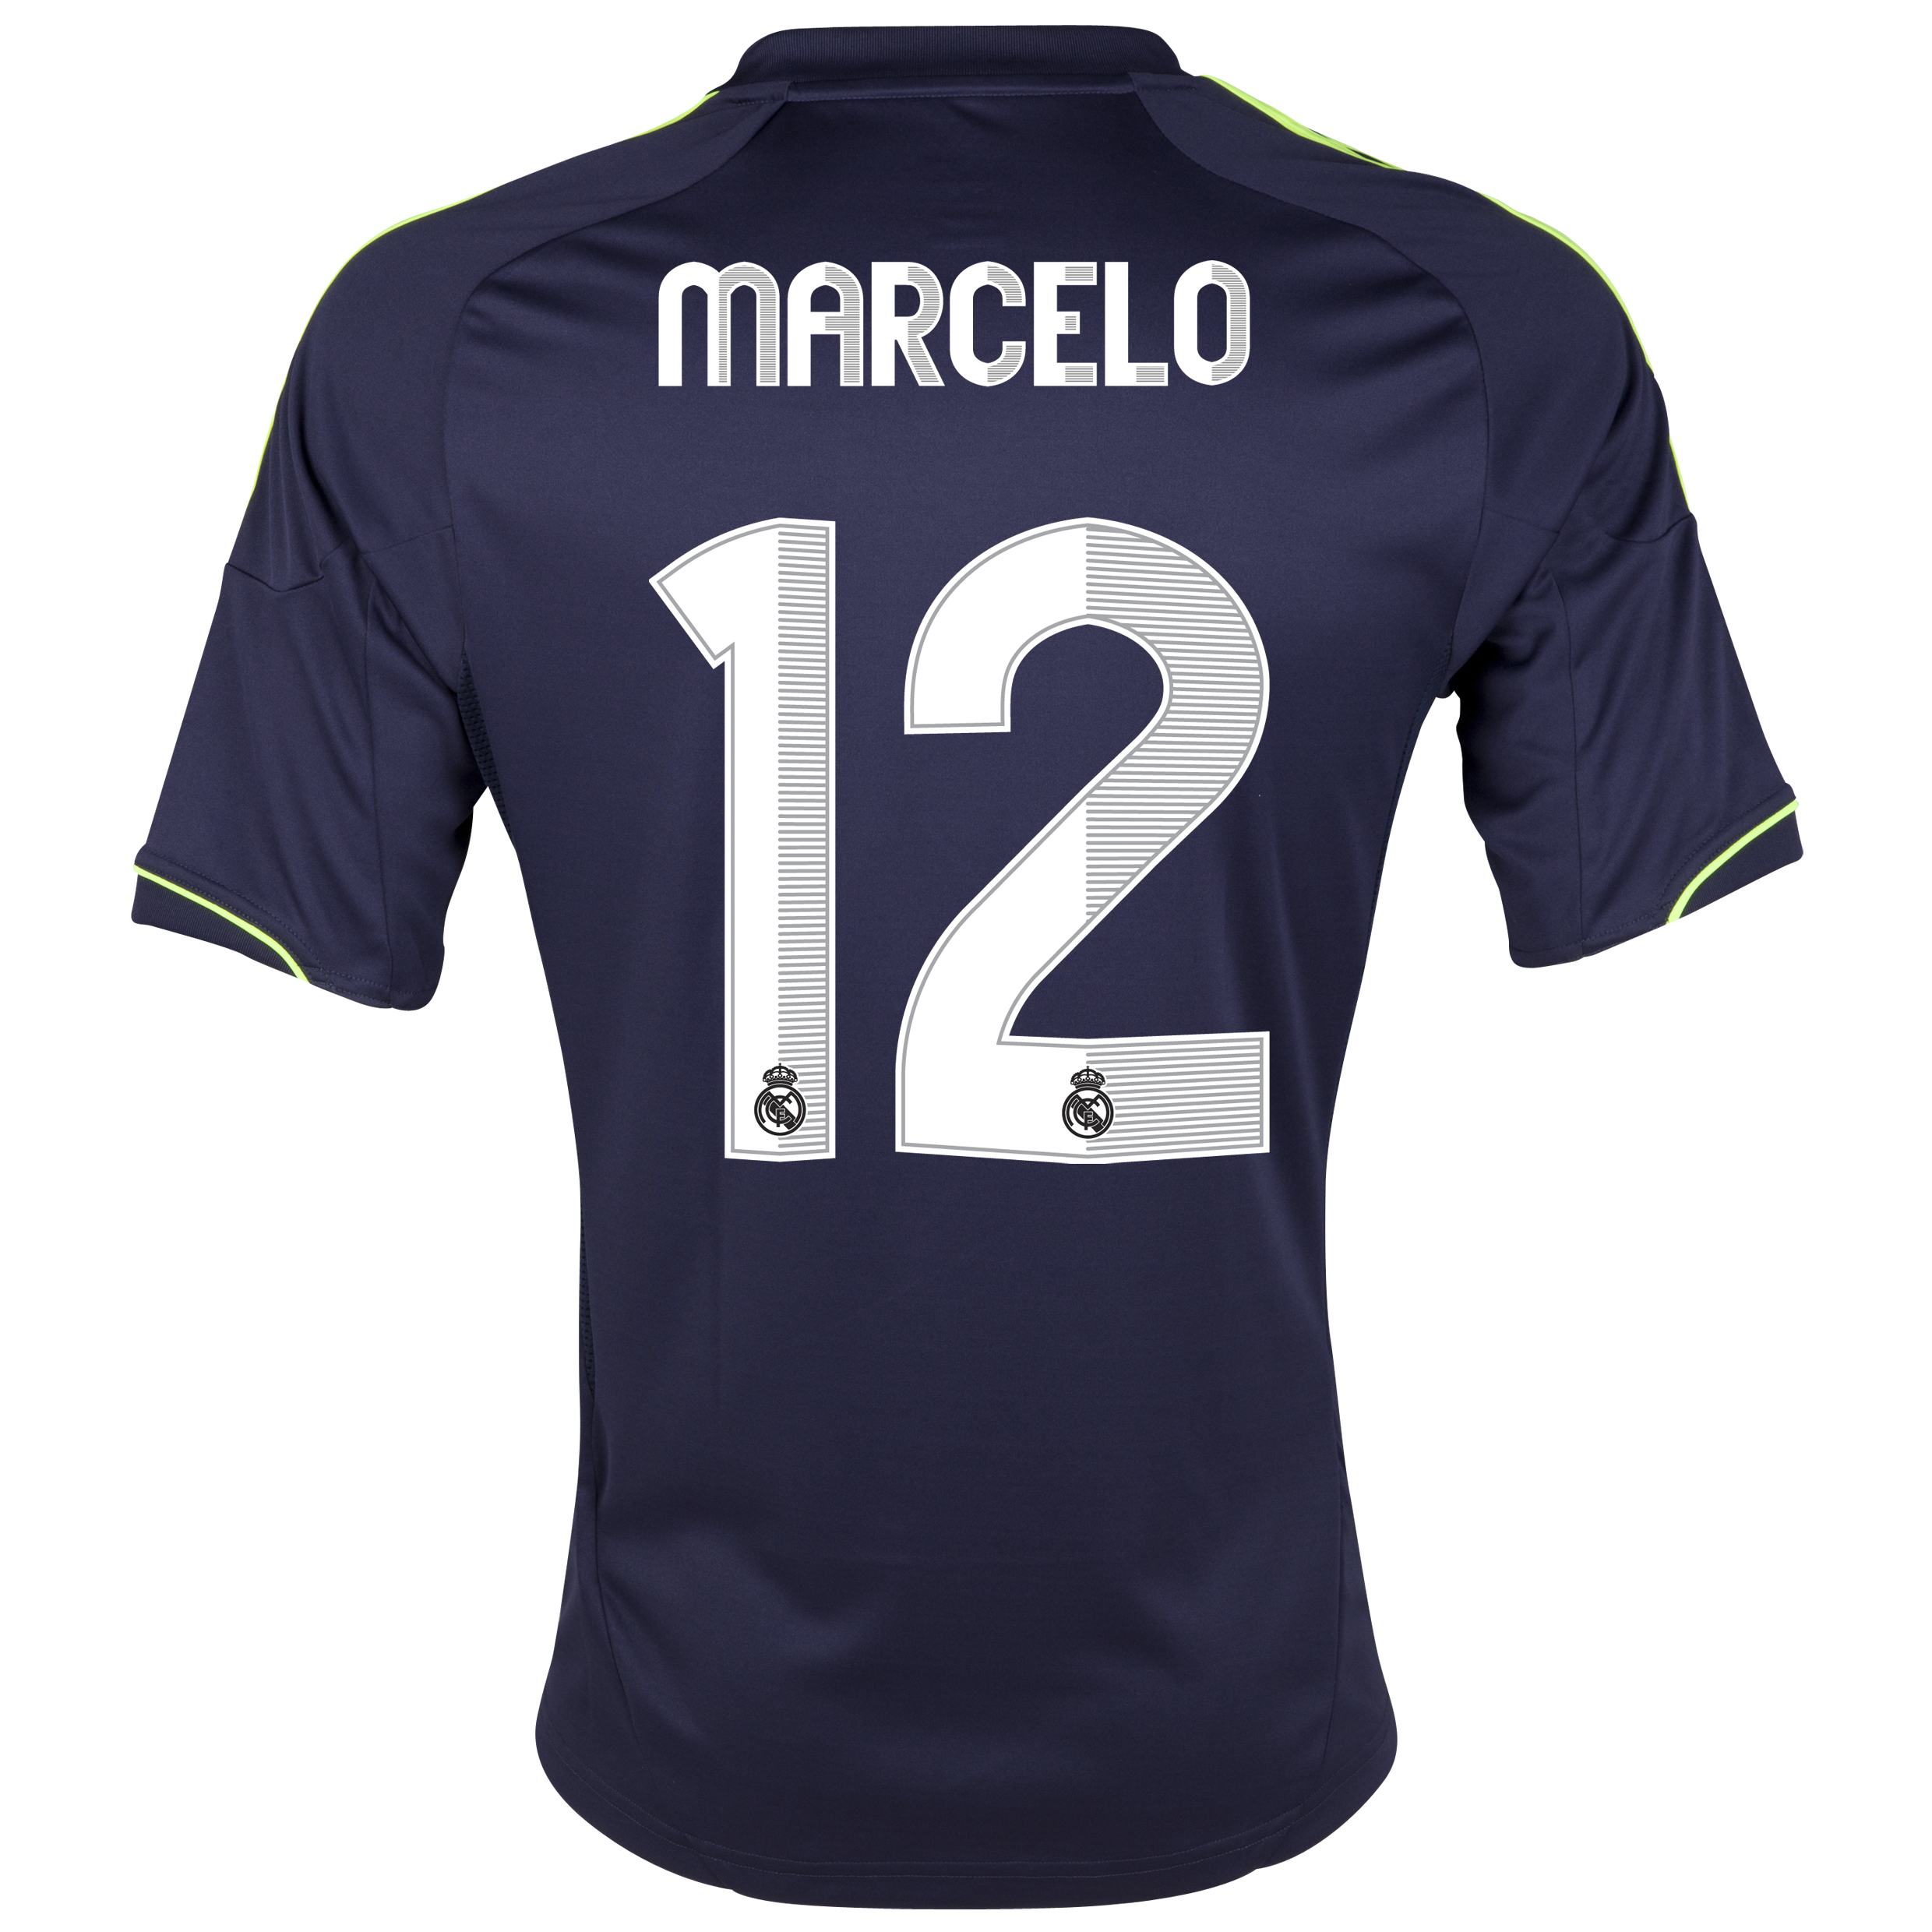 Camiseta visitante Real Madrid 2012/13 con impresin 12 Marcelo - Joven